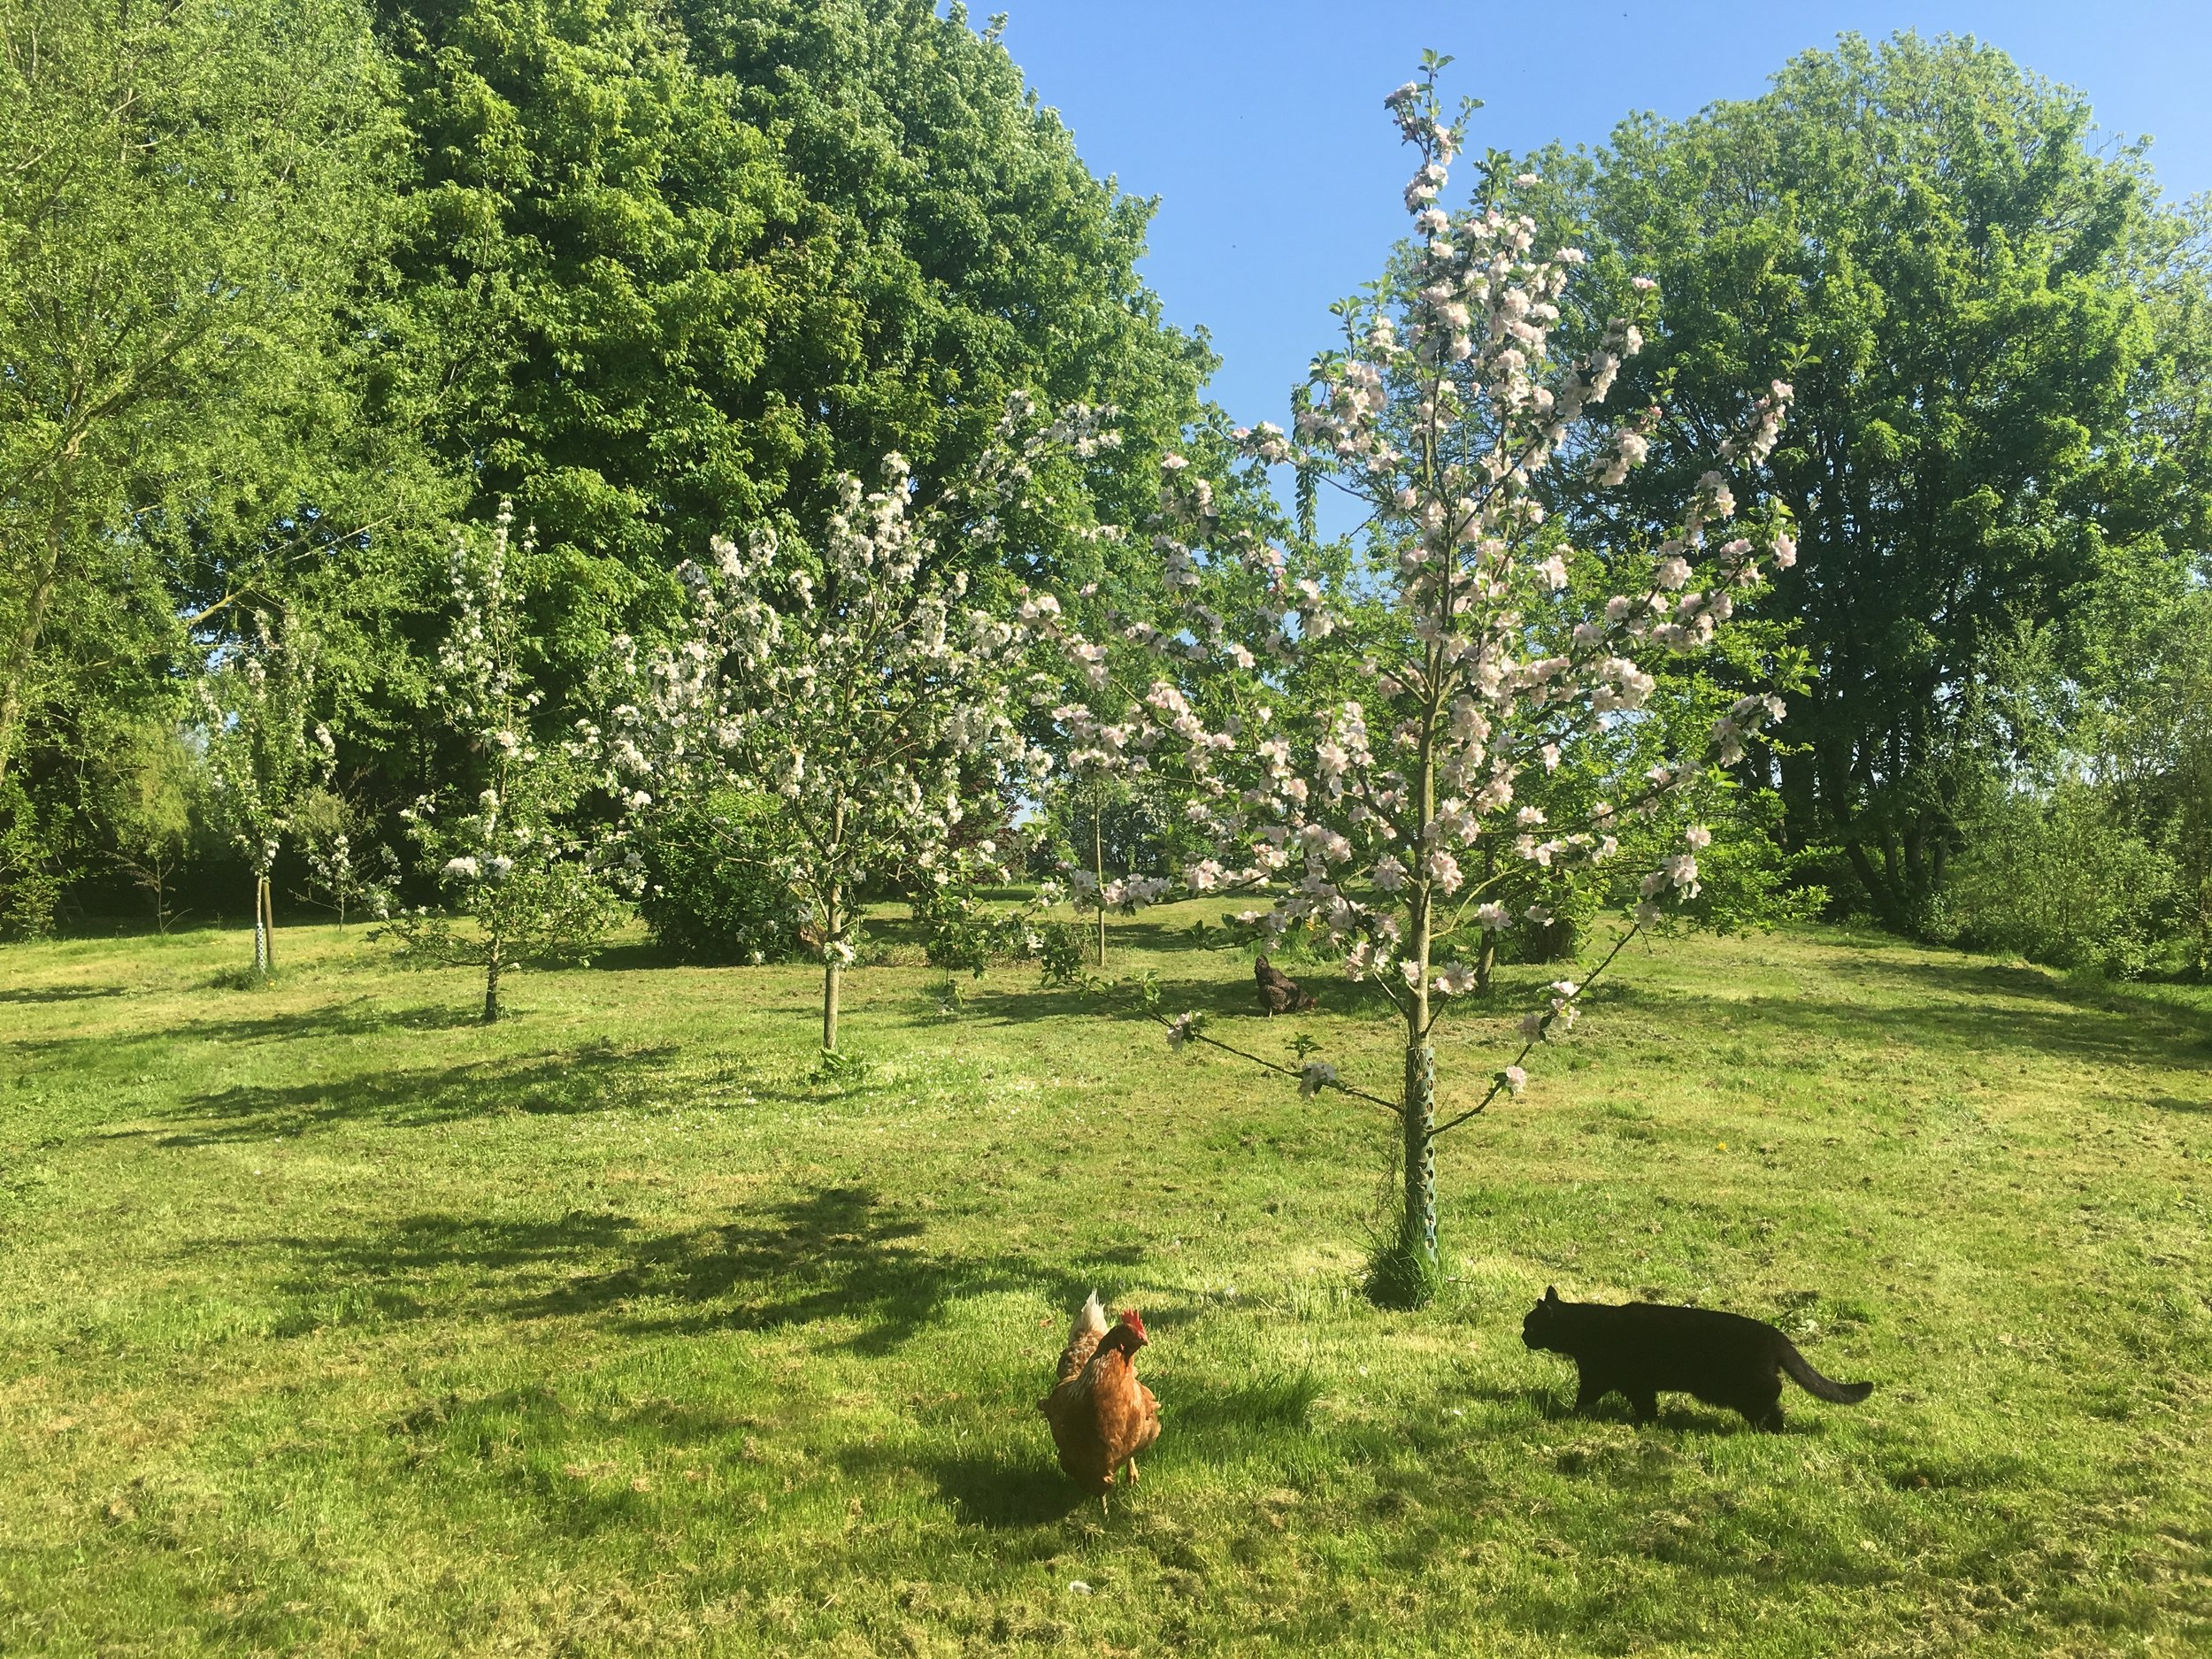 chickens in a young orchard